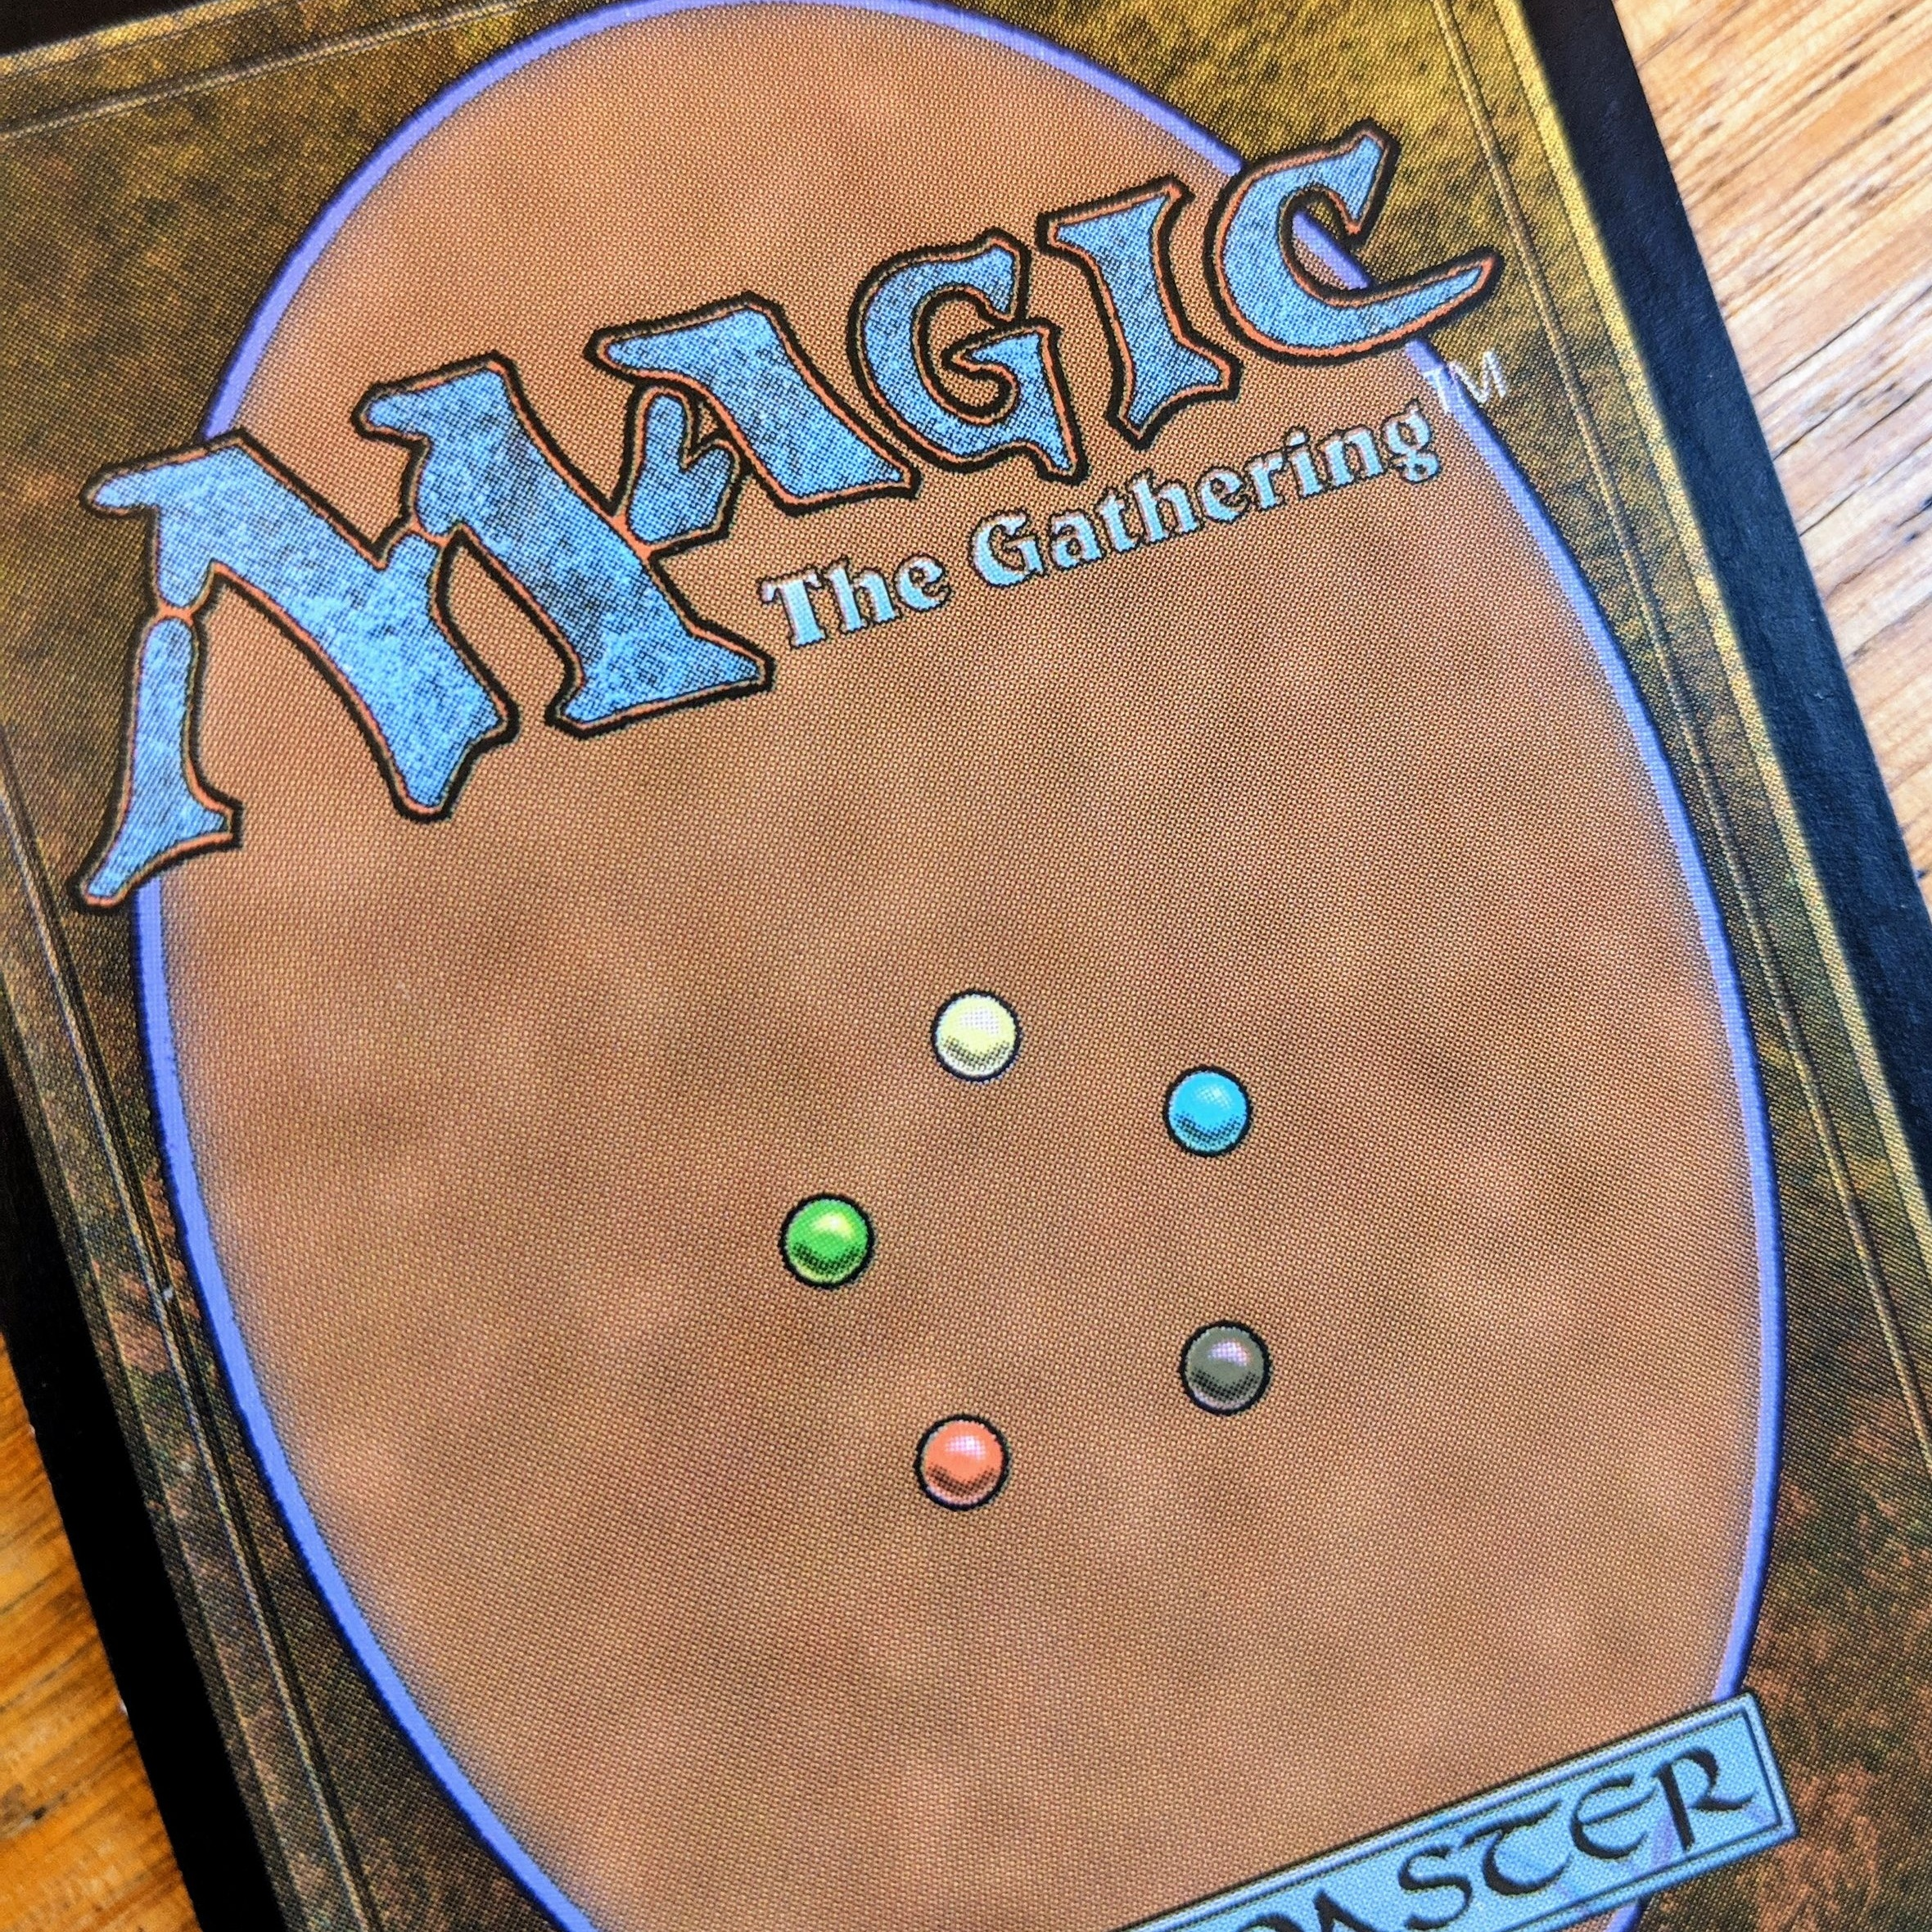 The color wheel is printed on the back of every Magic card.